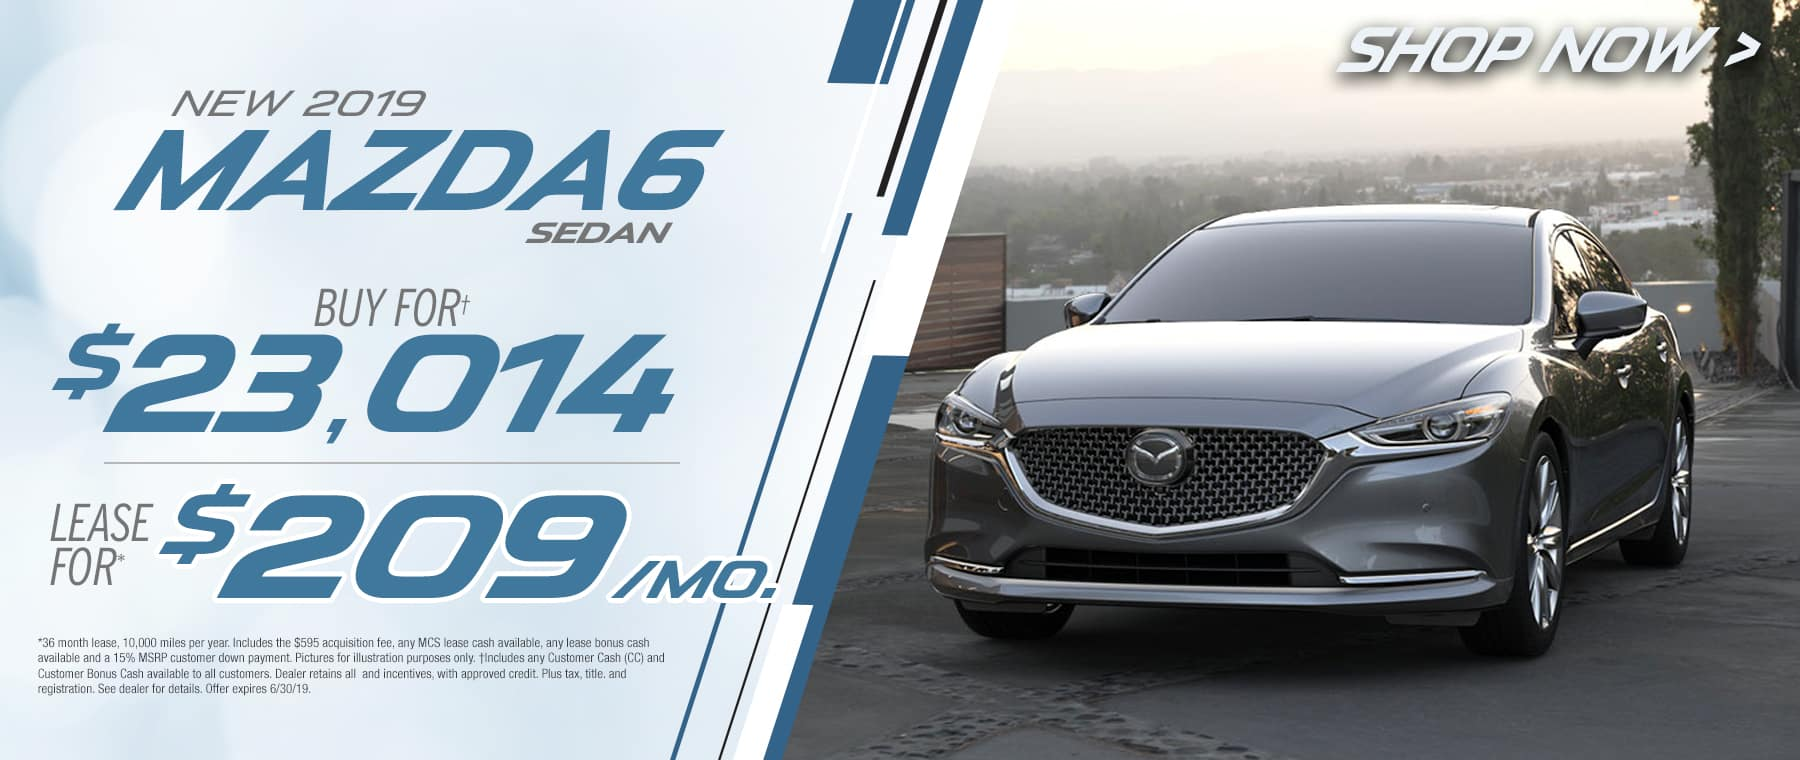 2019 Mazda6 $209 Per Month OR Buy For $23014